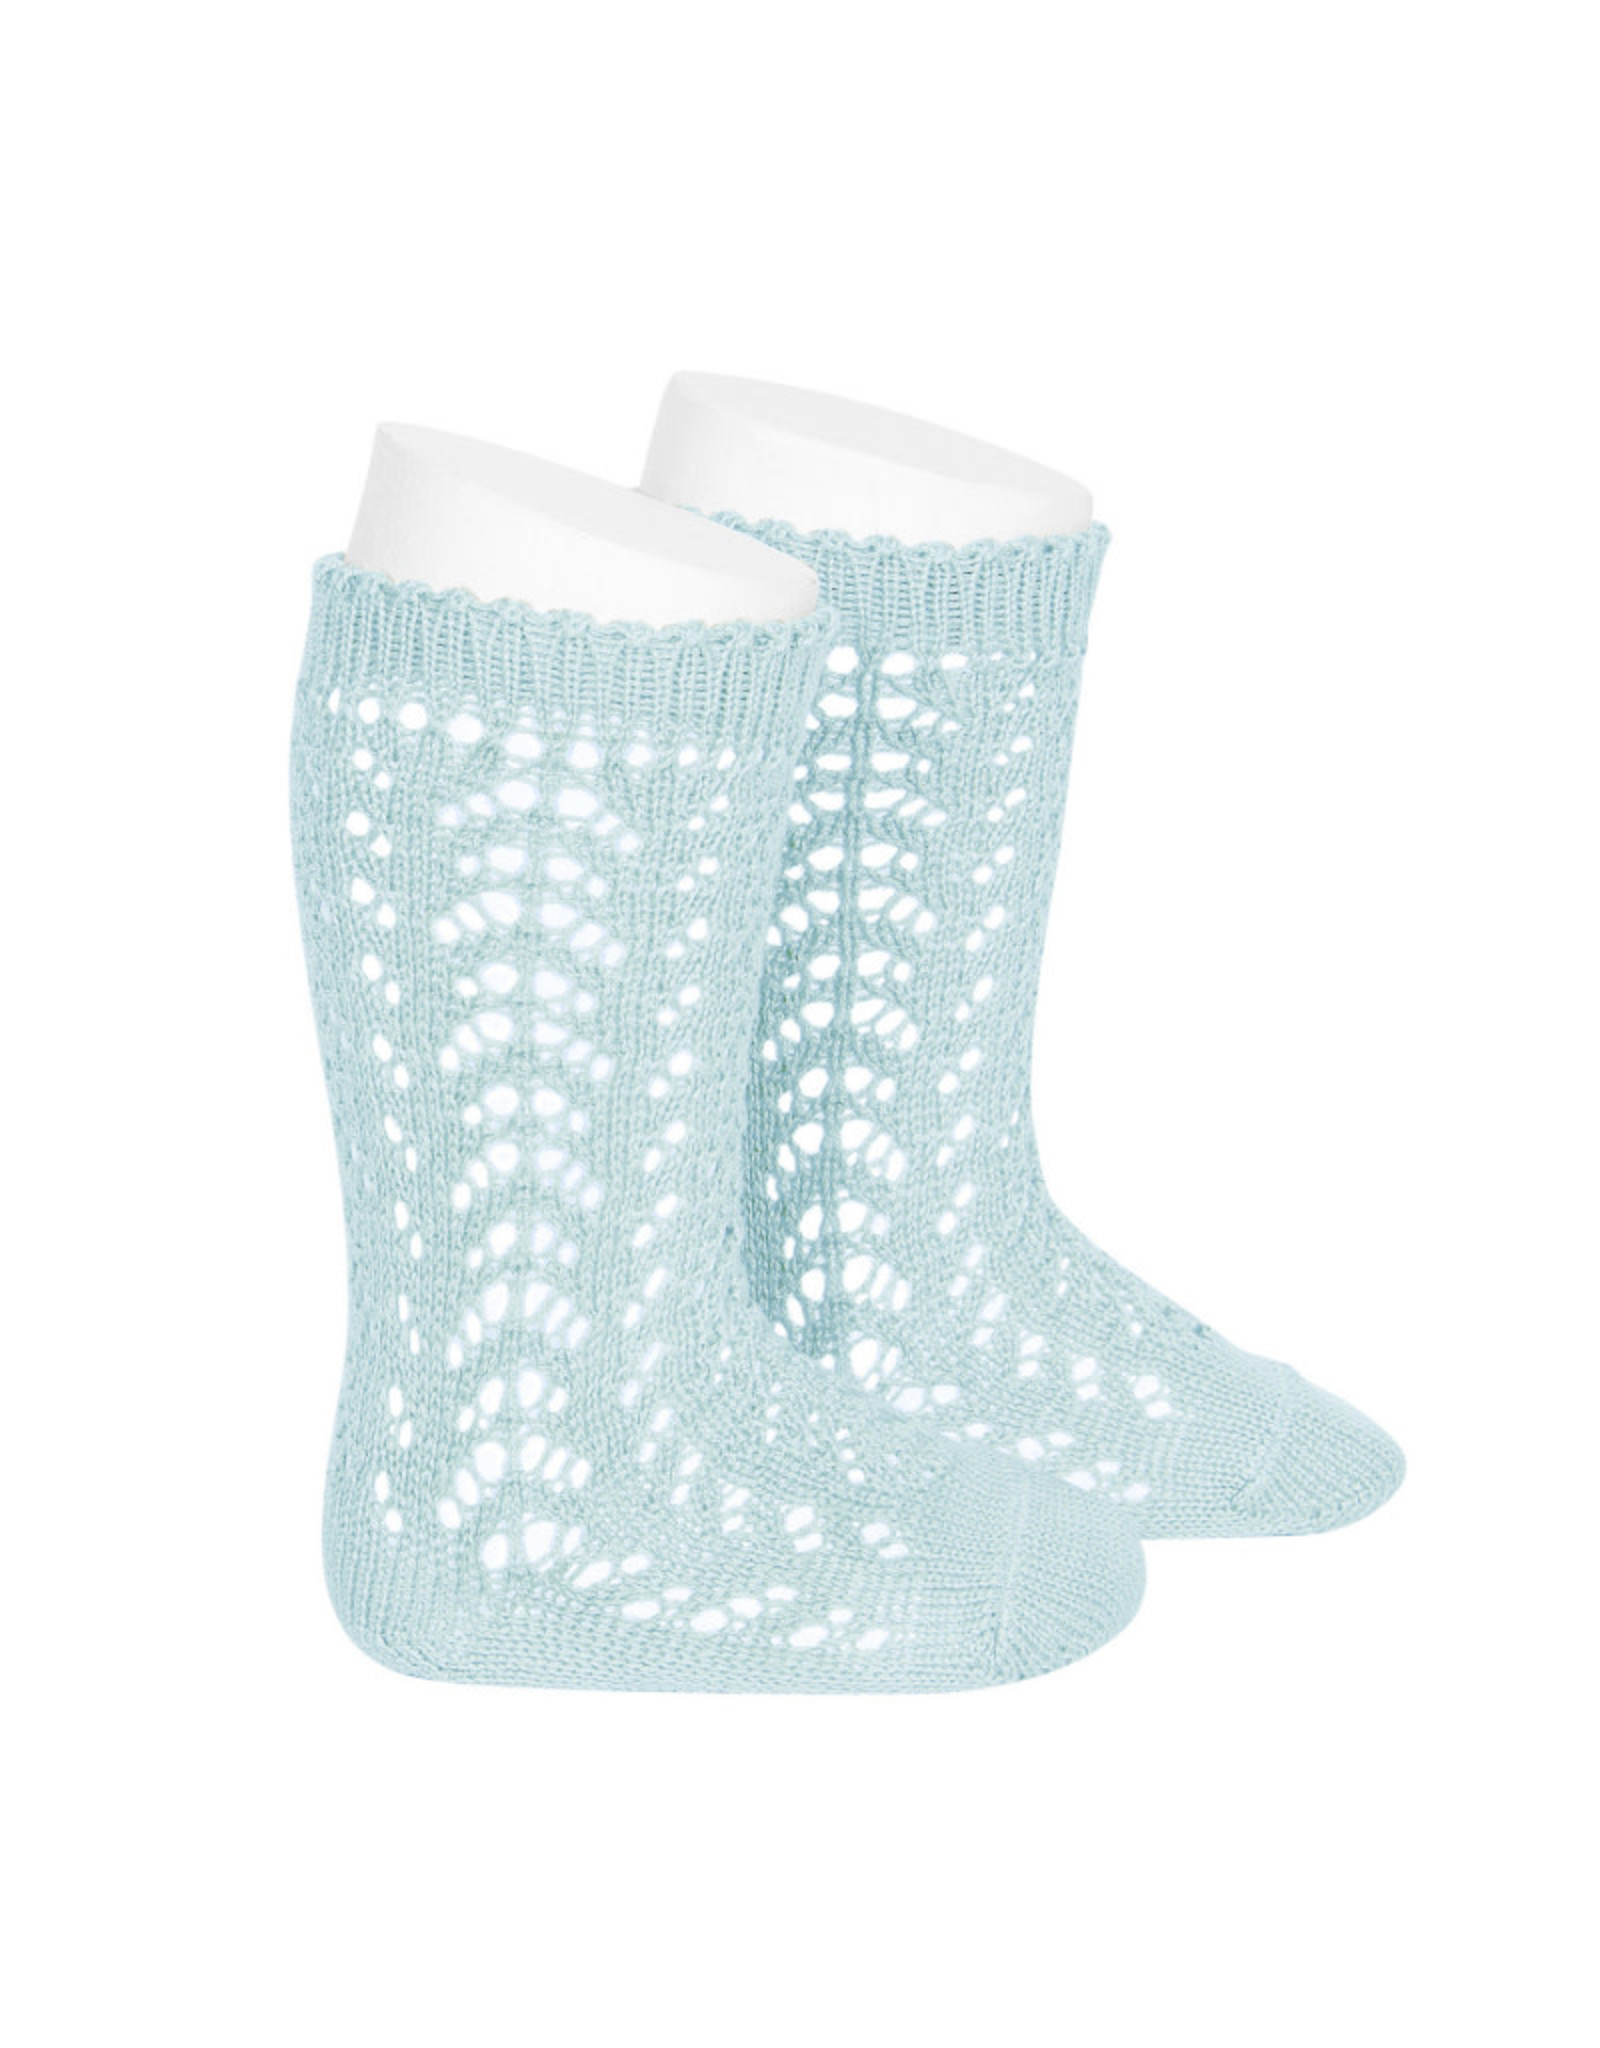 CONDOR Aquamarine Openwork Knee Socks